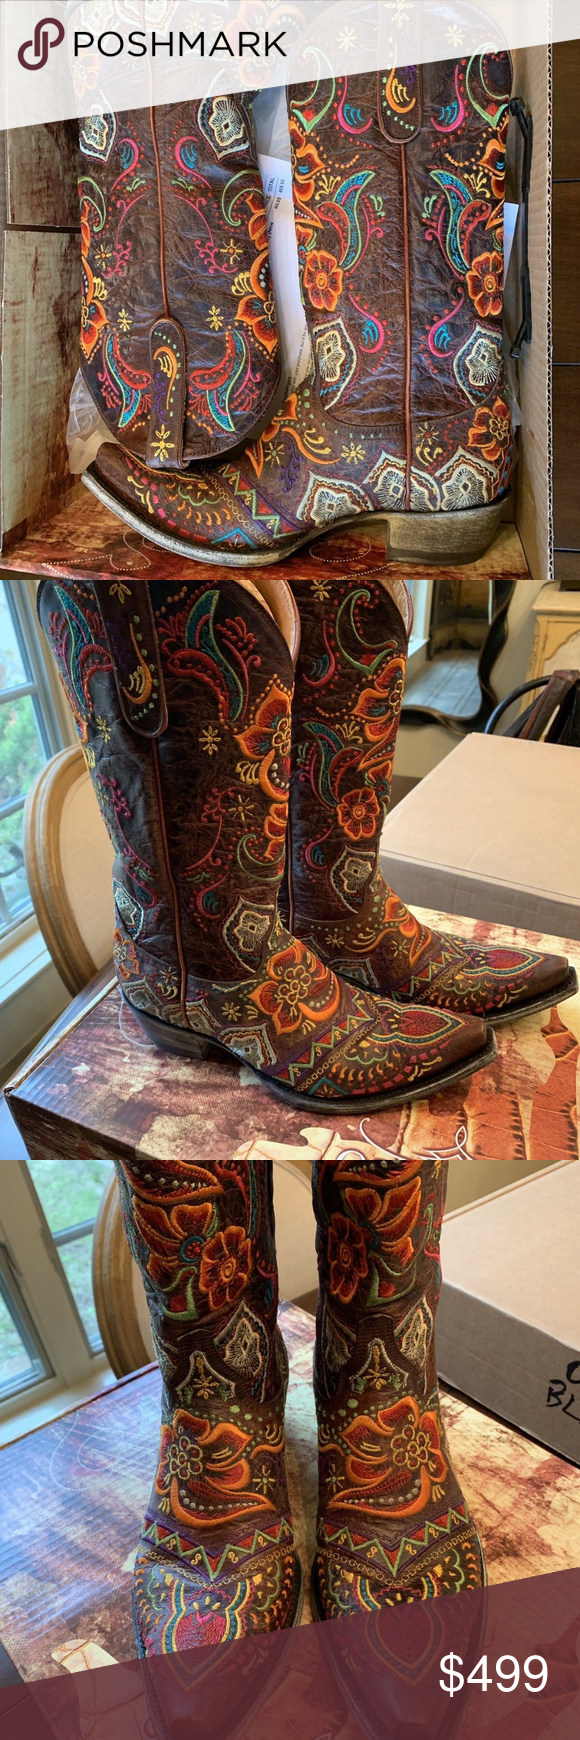 399a691ccfd Brand New Old Gringo Olivia Boots Old Gringo Olivia 13